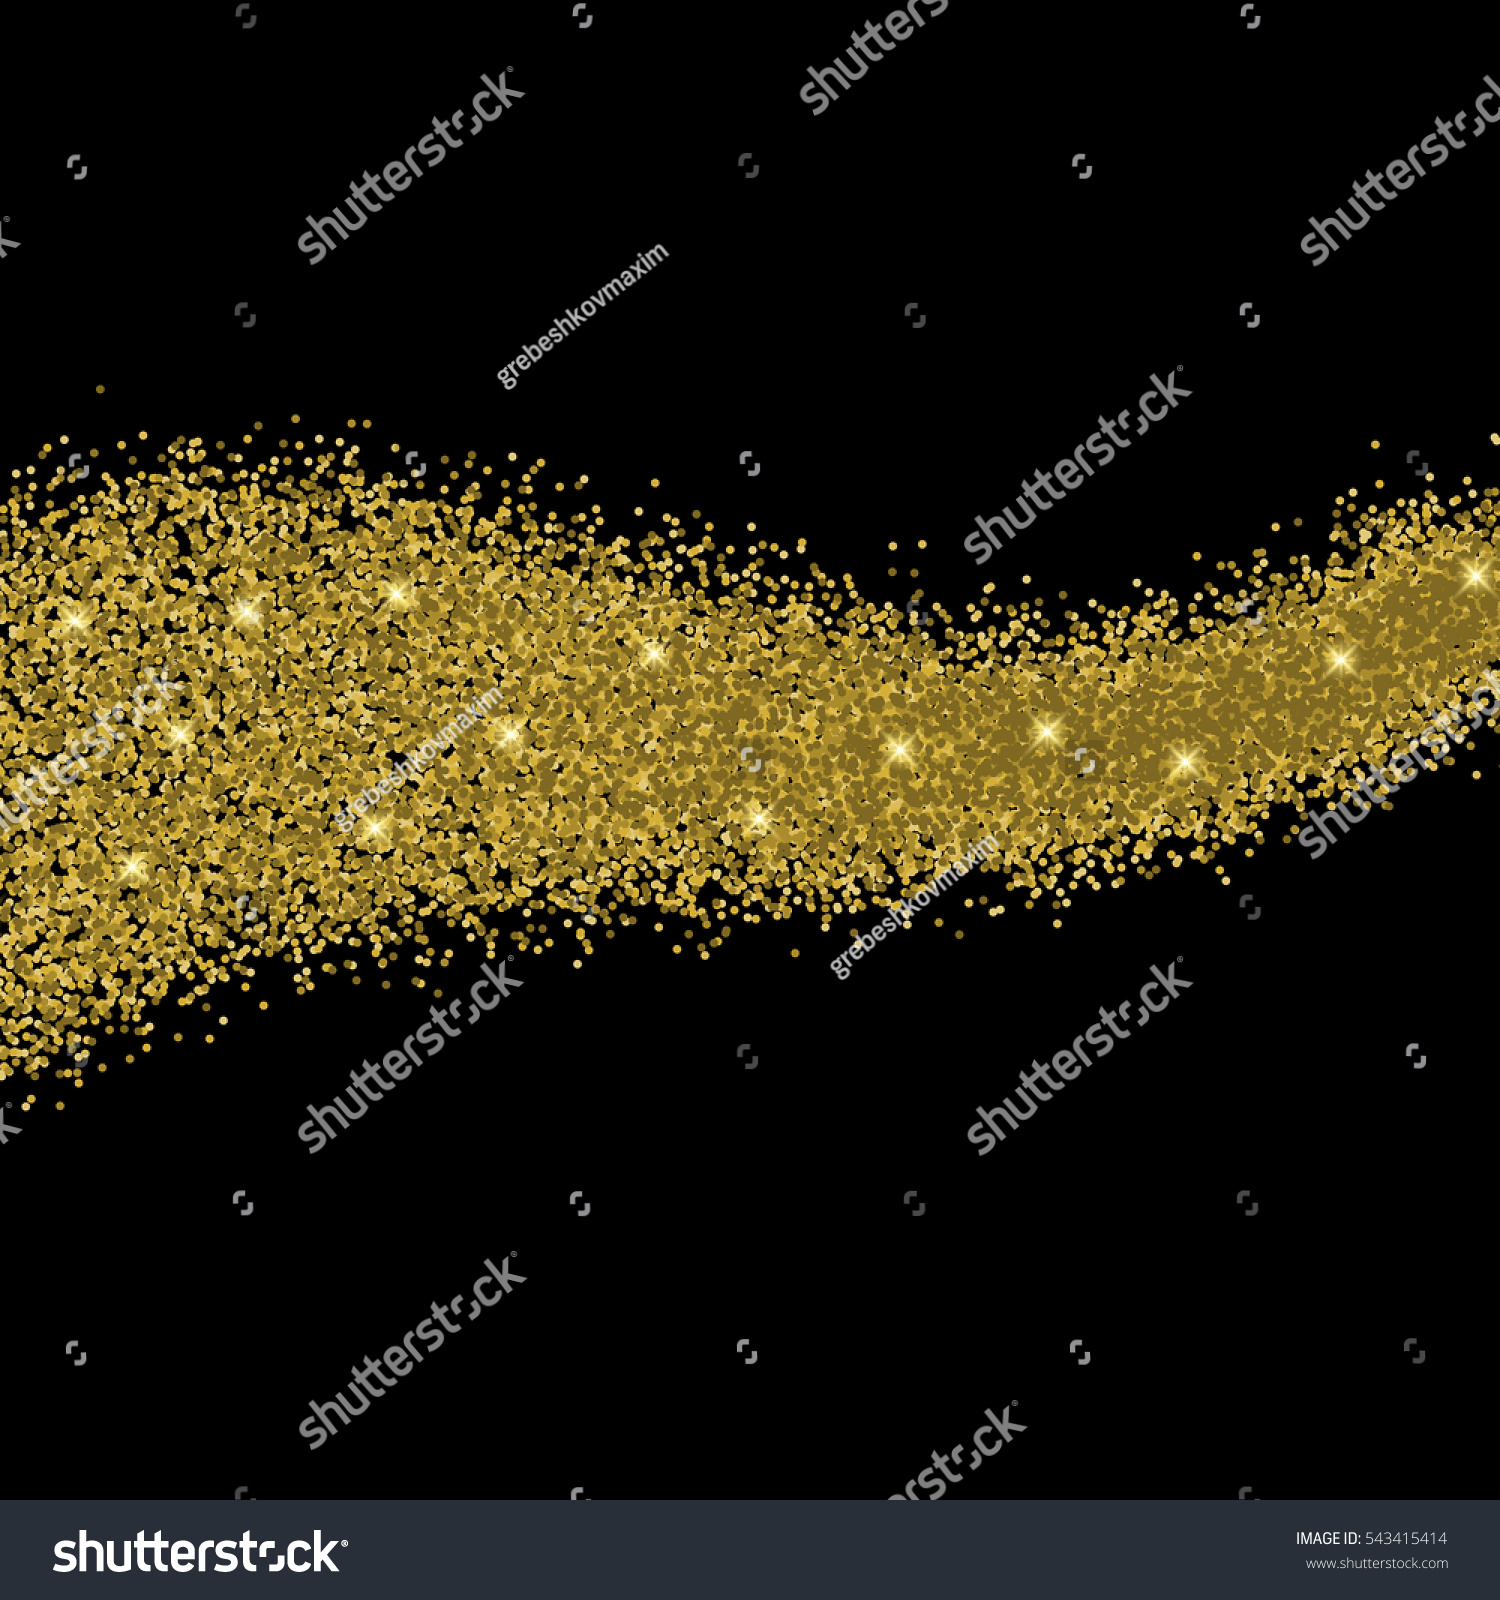 Gold glitter bright vector transparent background golden sparkles - Gold Glitter Wave Abstract Background Golden Sparkles On Black Background Card Design